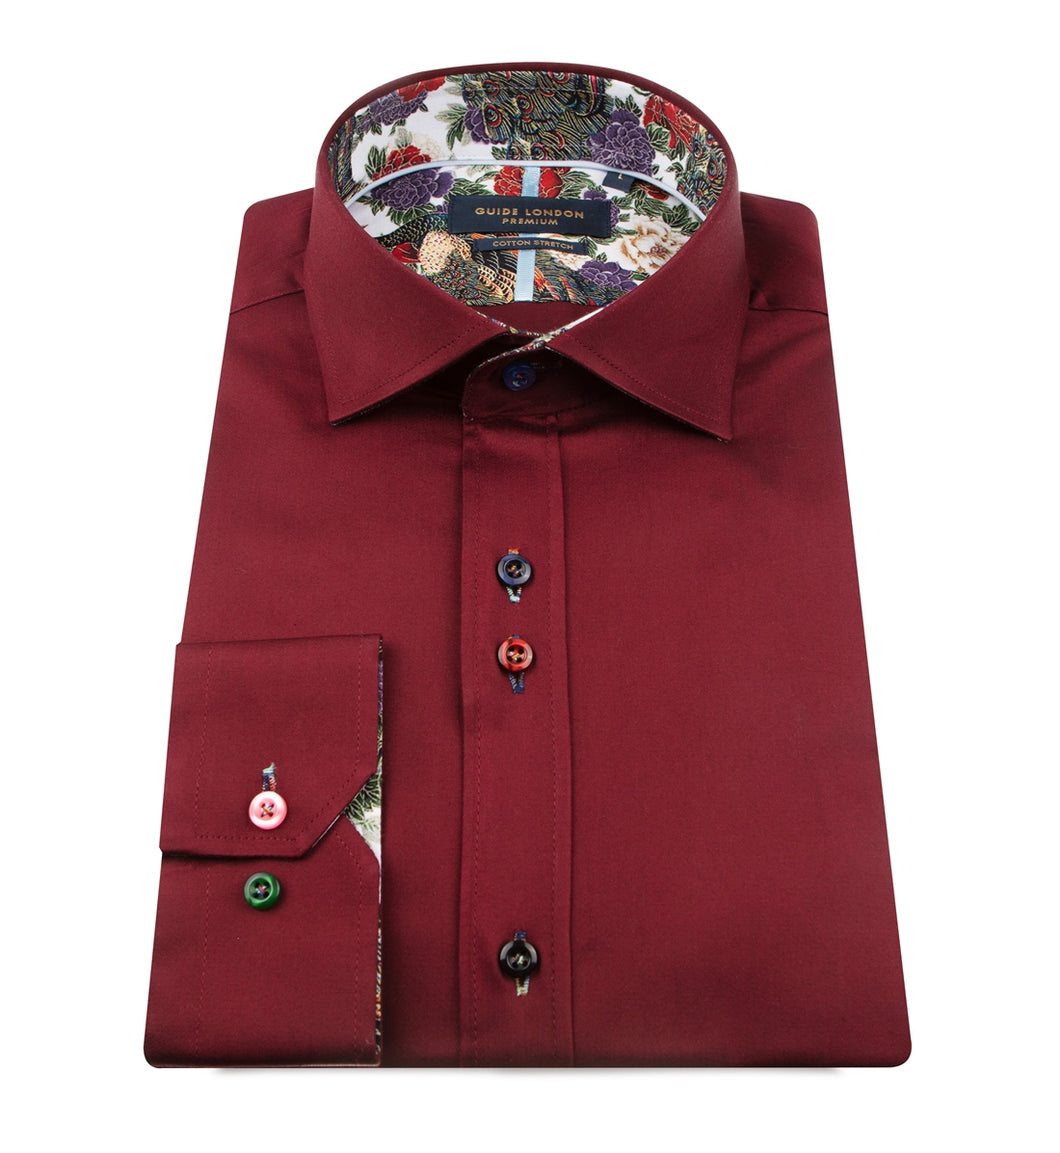 Guide London Plain Burgundy Shirt Floral Trim